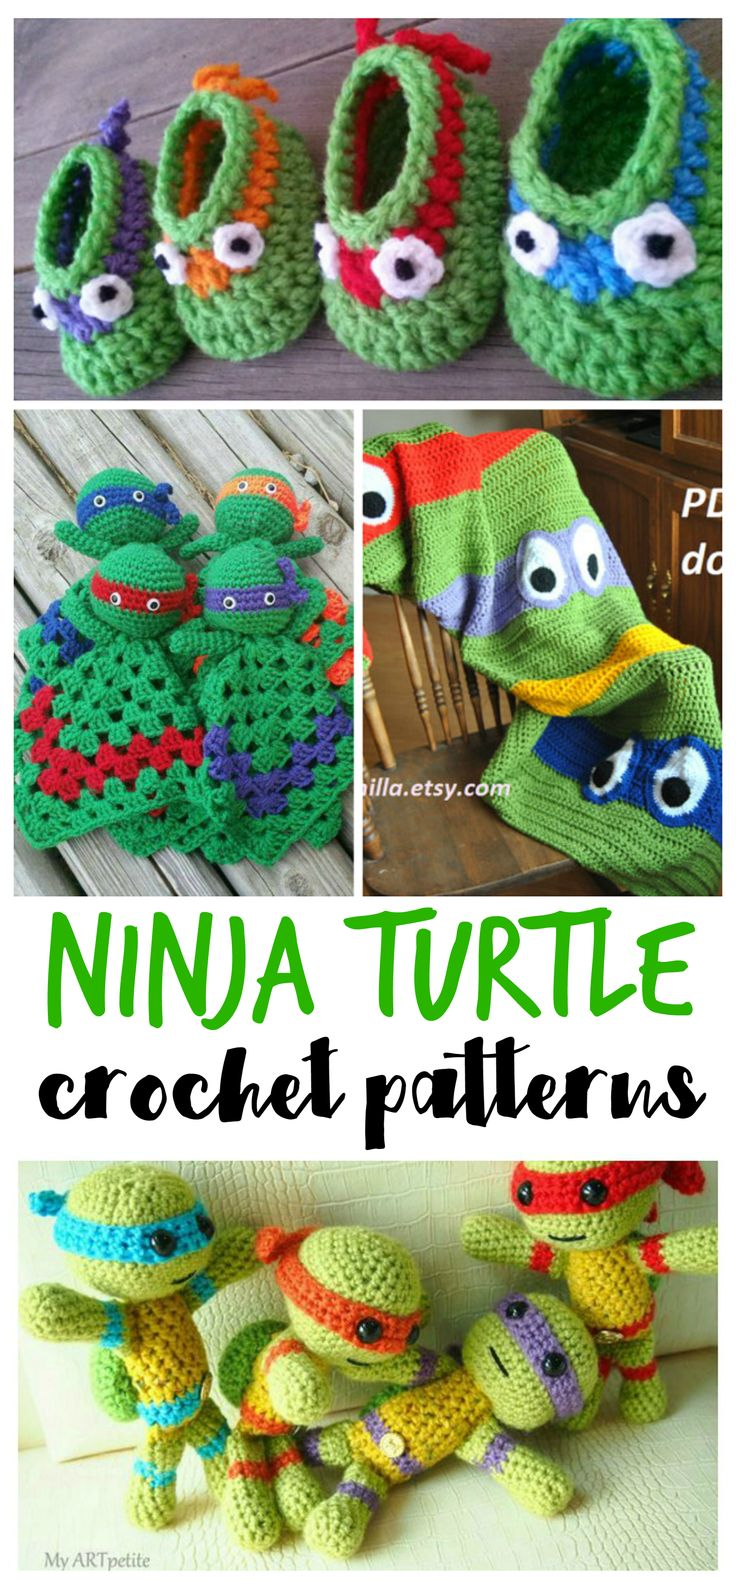 Such cute ninja turtle crochet patterns! Most are free!